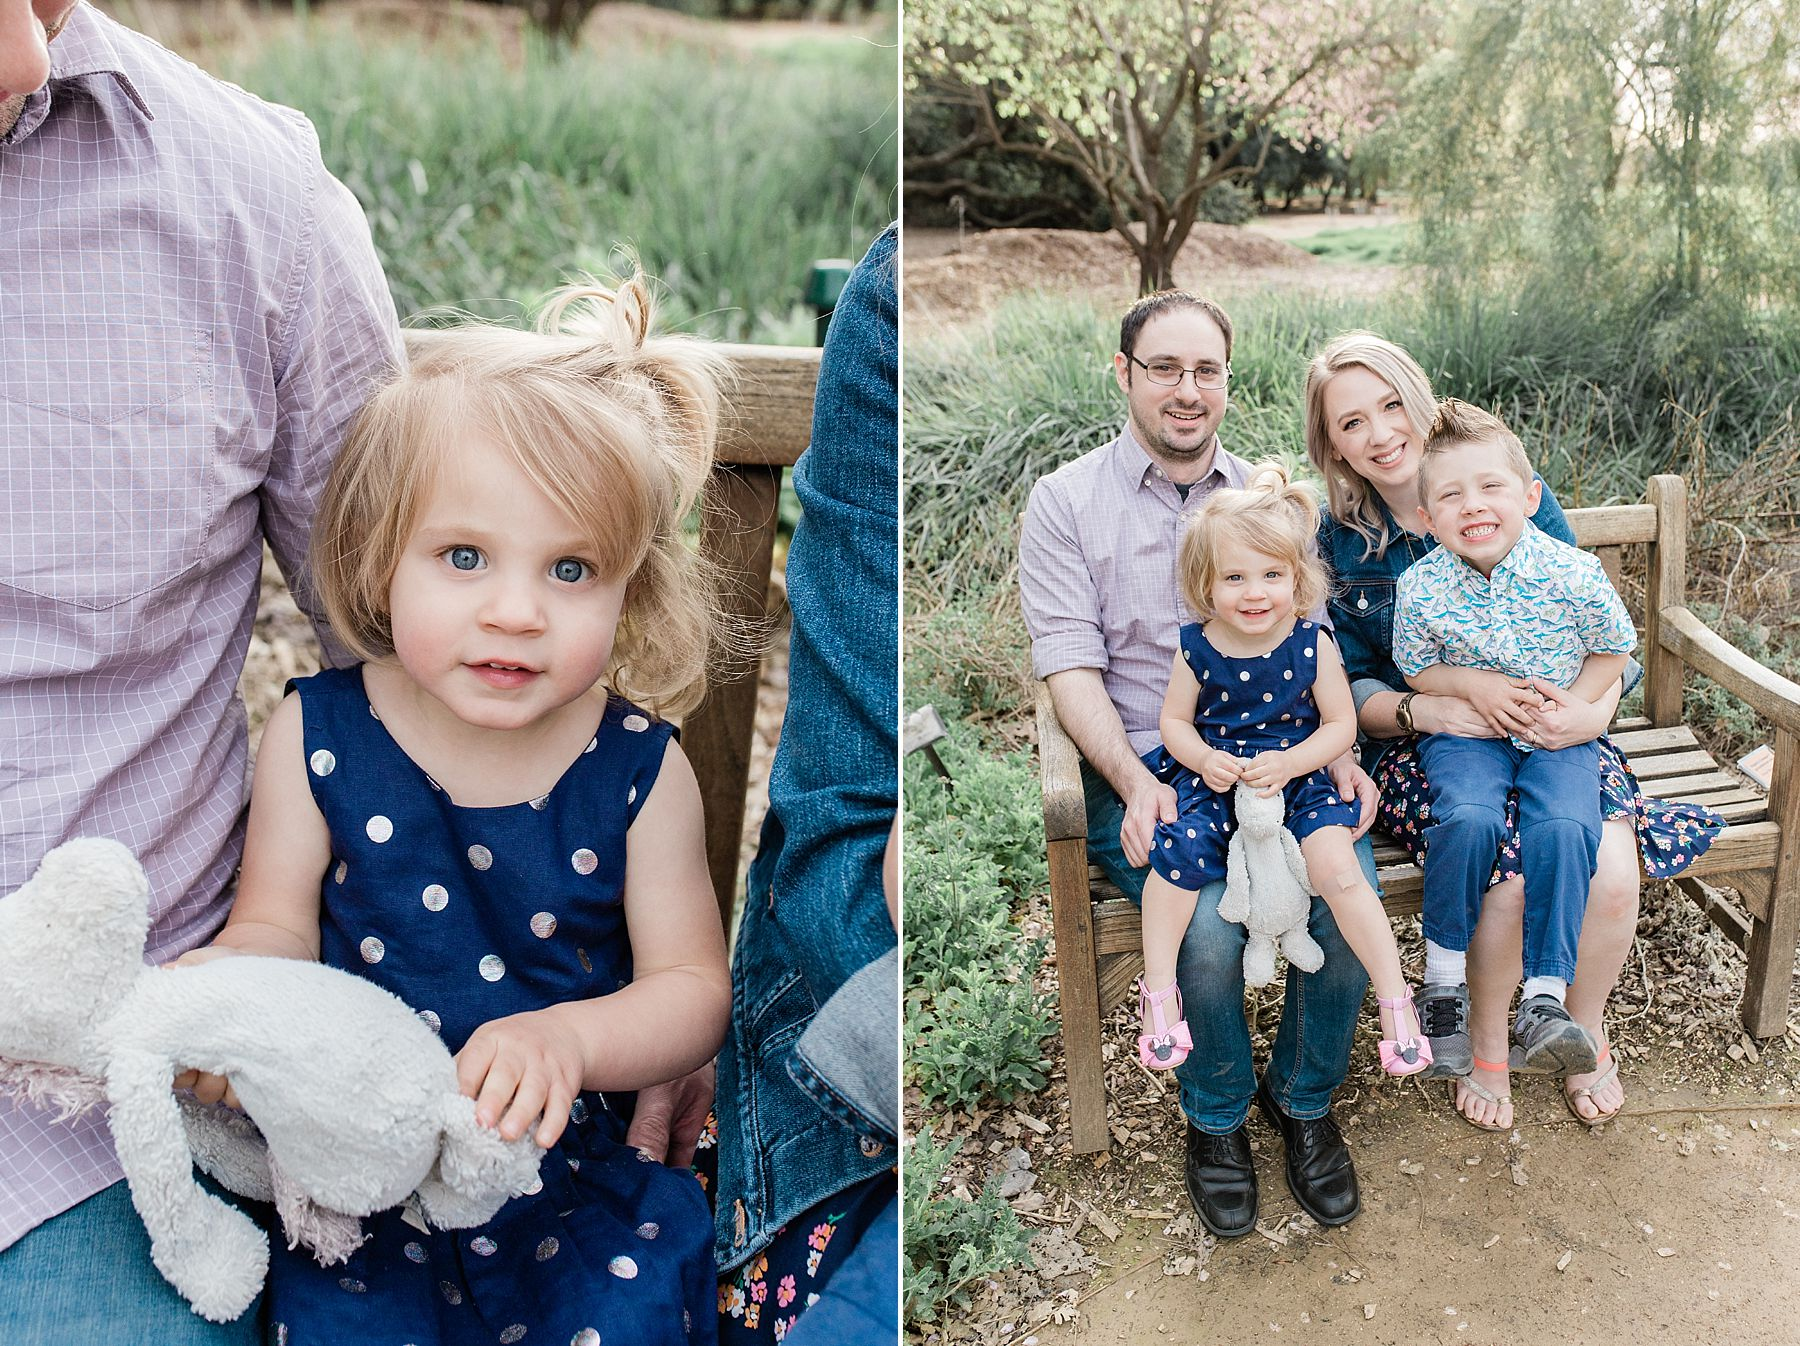 Davis Family Portraits at UC Davis Arboretum - Padovani Family - Ashley Baumgartner - Davis Family Photographer_0022.jpg